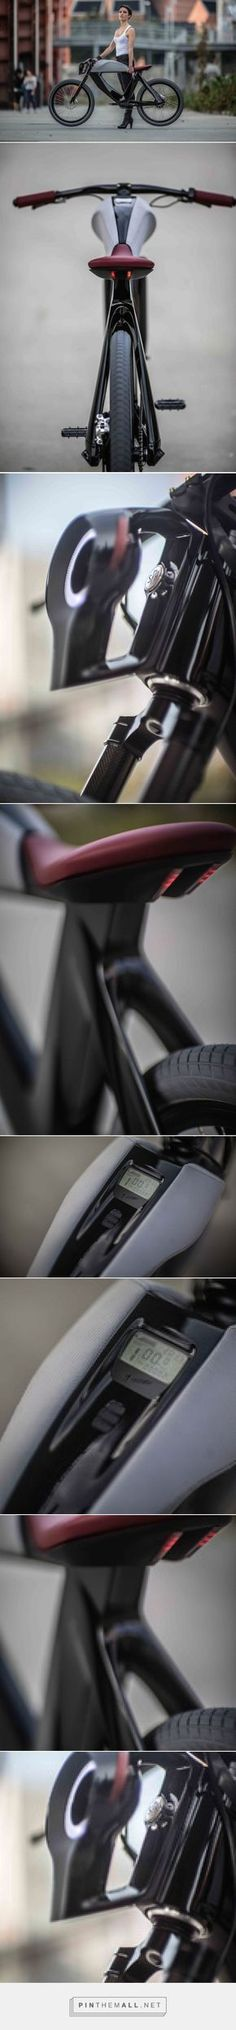 Black Electric Bike – Fubiz Media - created via http://pinthemall.net